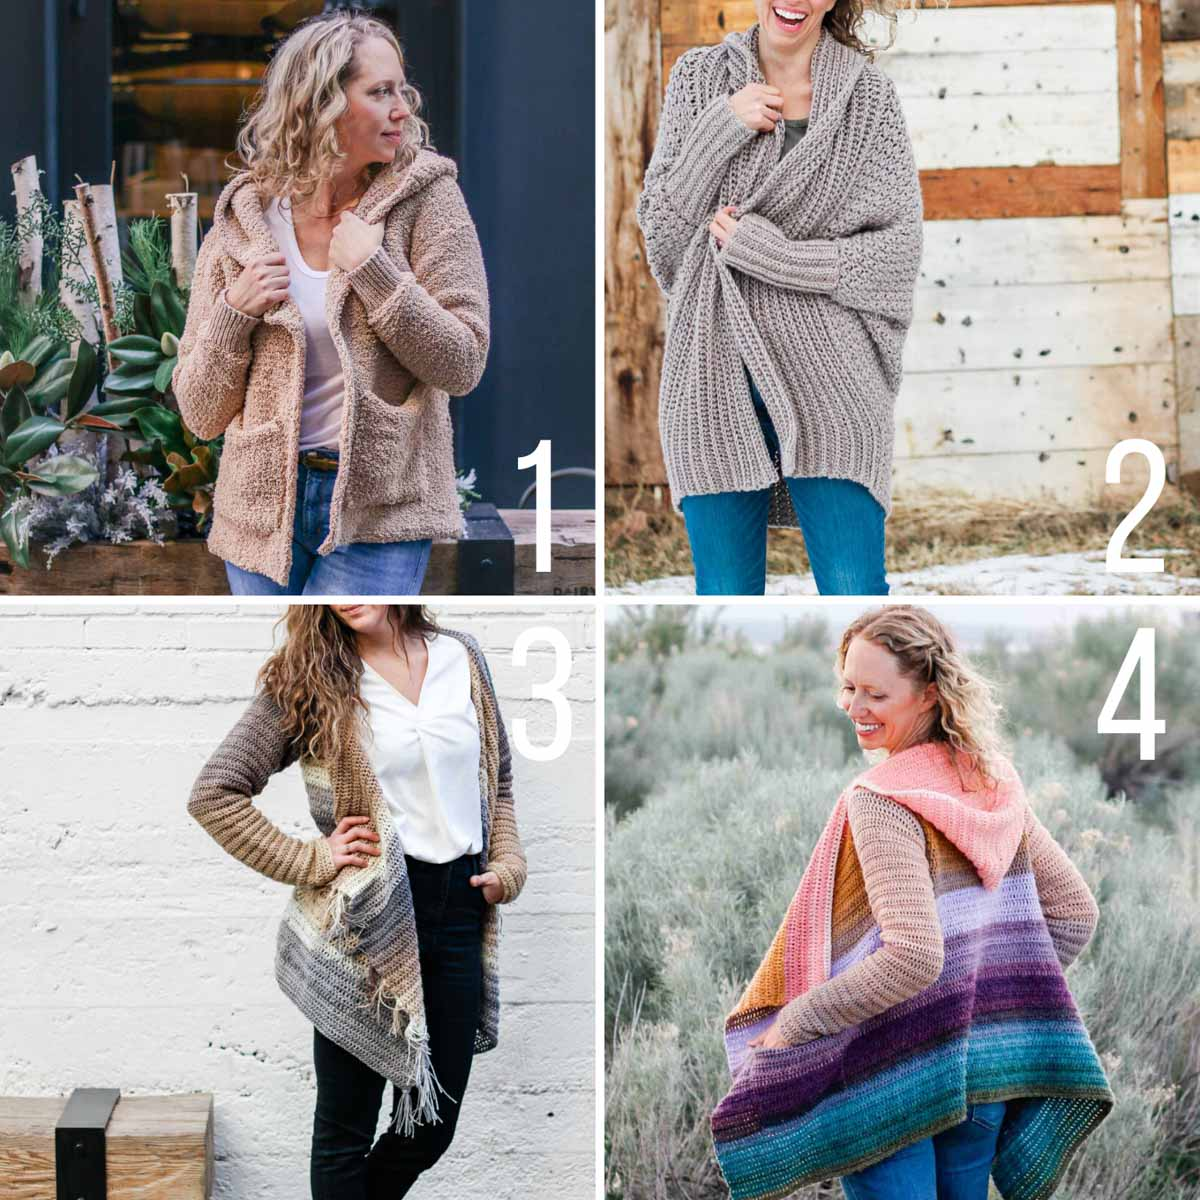 Four free patterns that teach you how to crochet a cardigan that looks modern and on-trend.